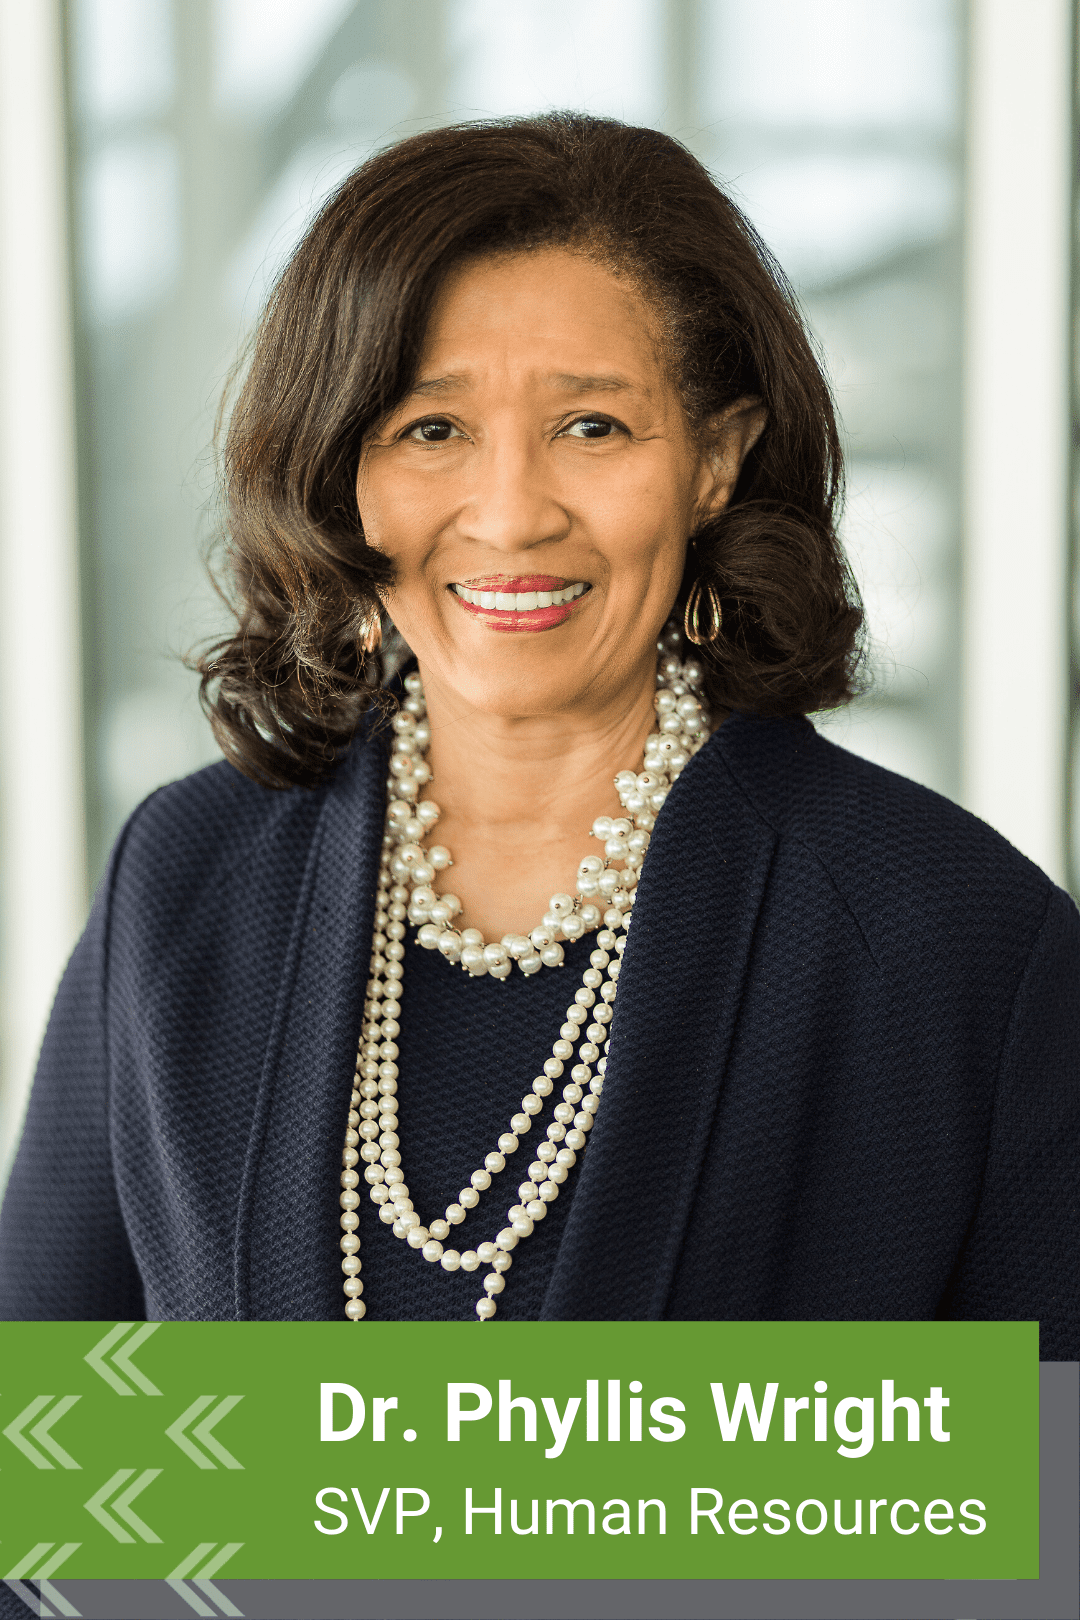 phyllis wright, SVP, Human Resources